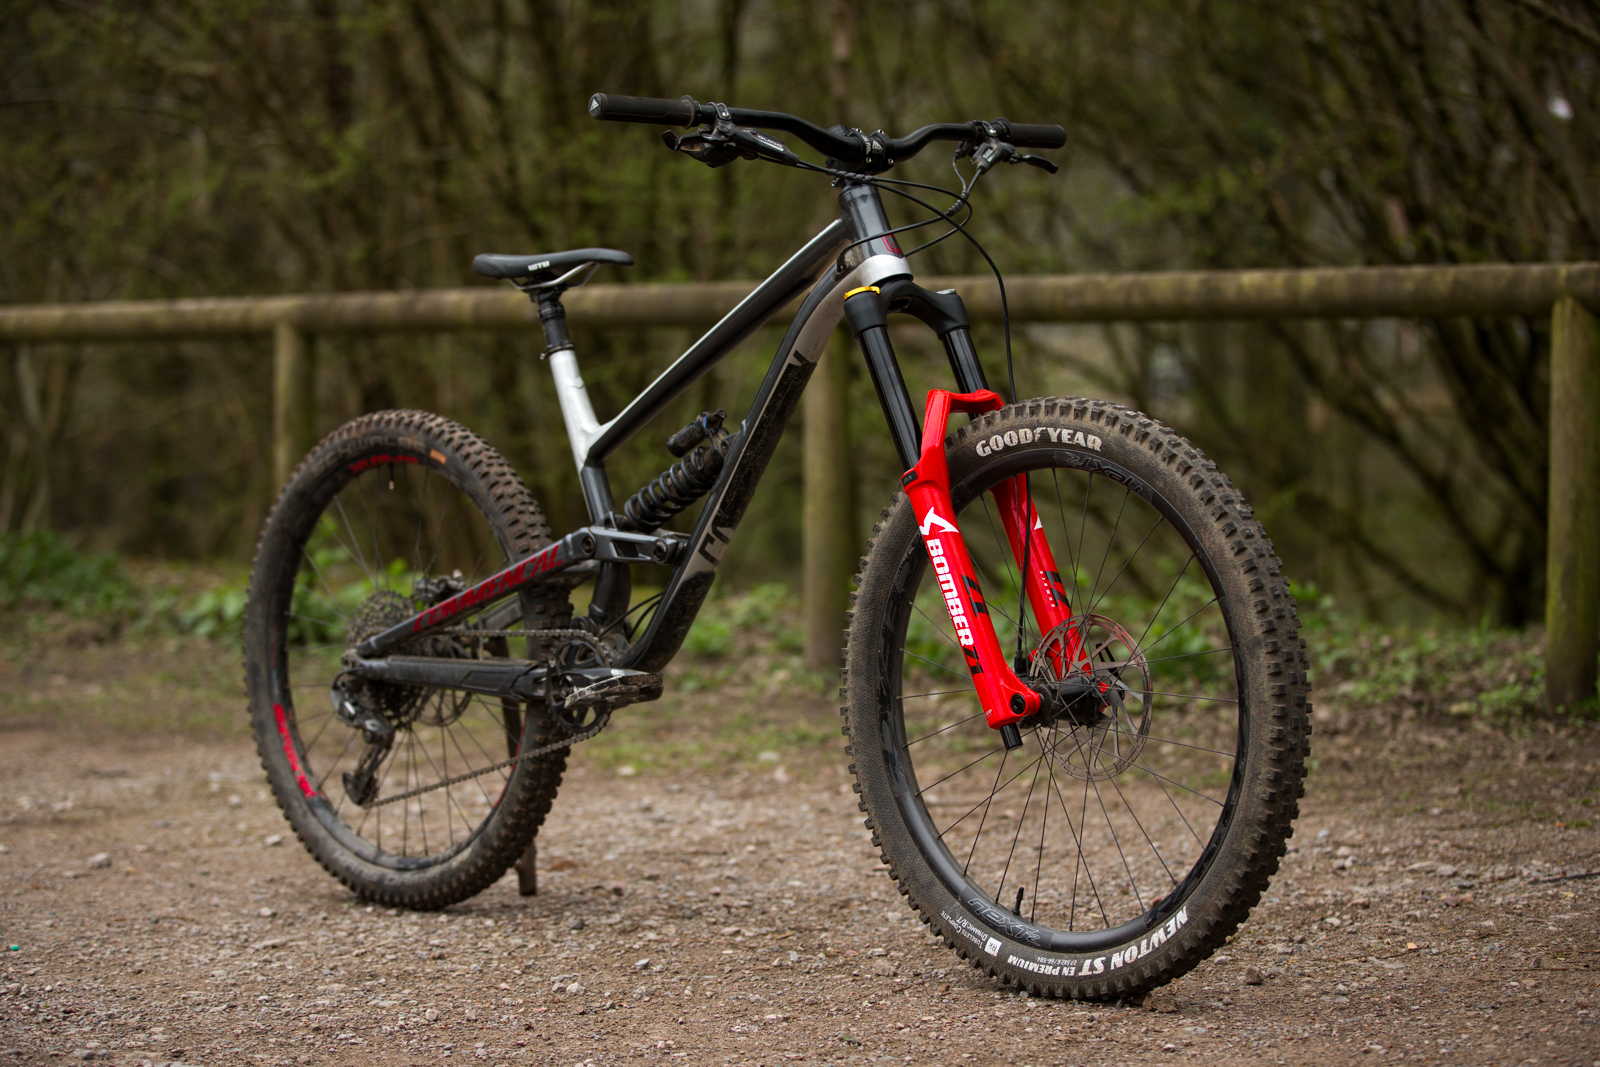 Marzocchi Z1 Bomber Suspension Fork Review (4)